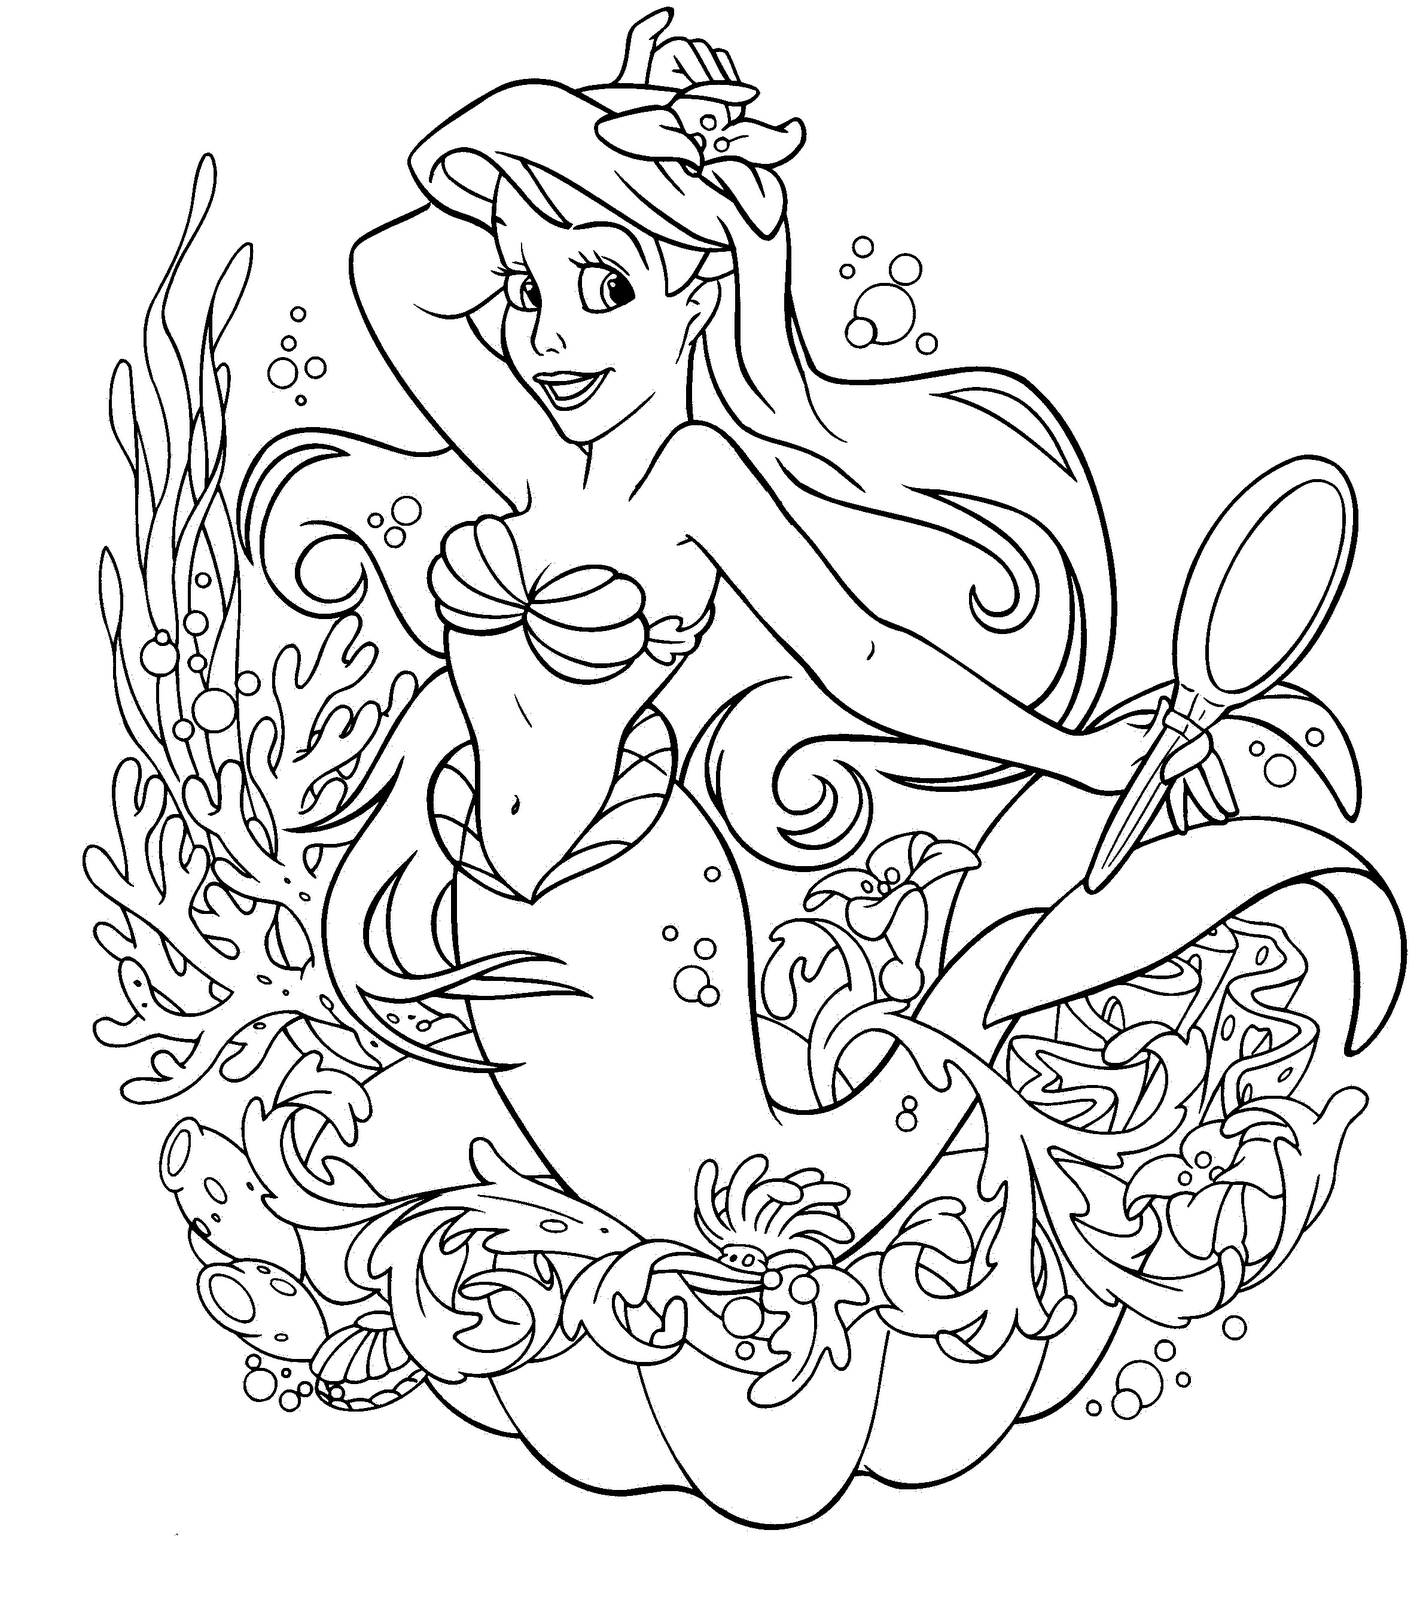 disney princess mermaid coloring pages - Disney Princess Coloring Pages To Print For Free